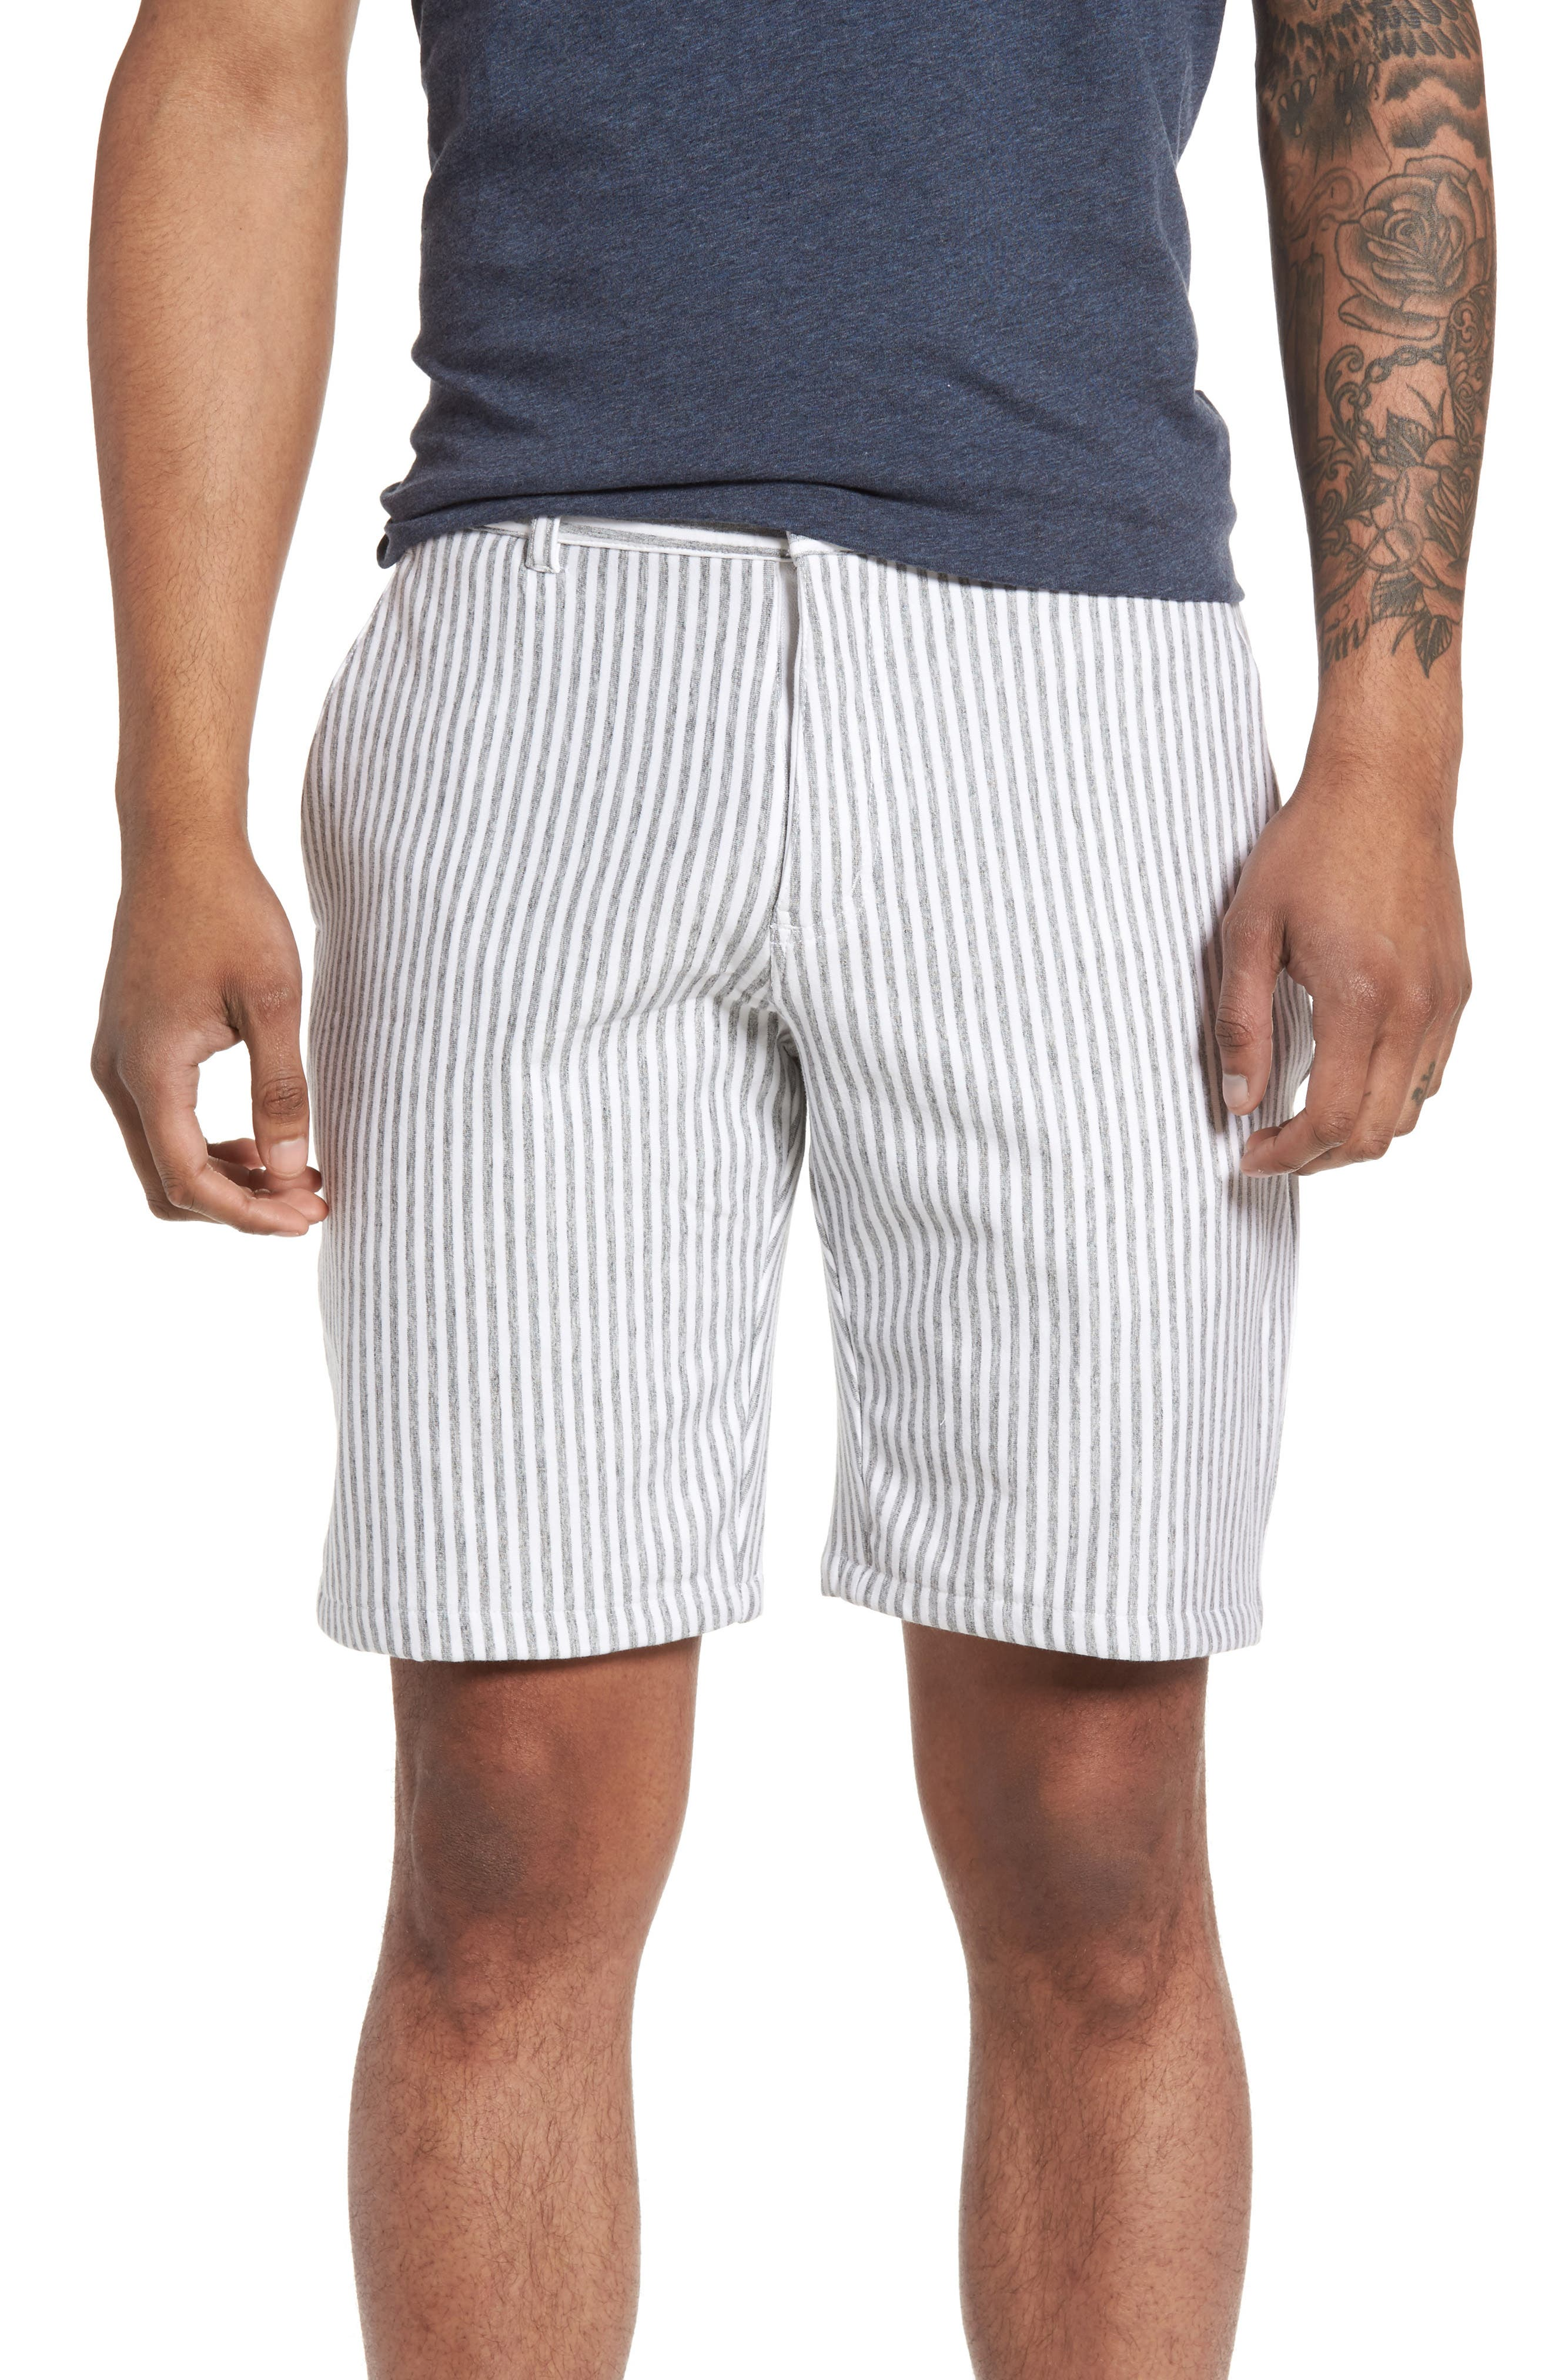 Stripe French Terry Shorts,                             Main thumbnail 1, color,                             Grey/ White Stripe